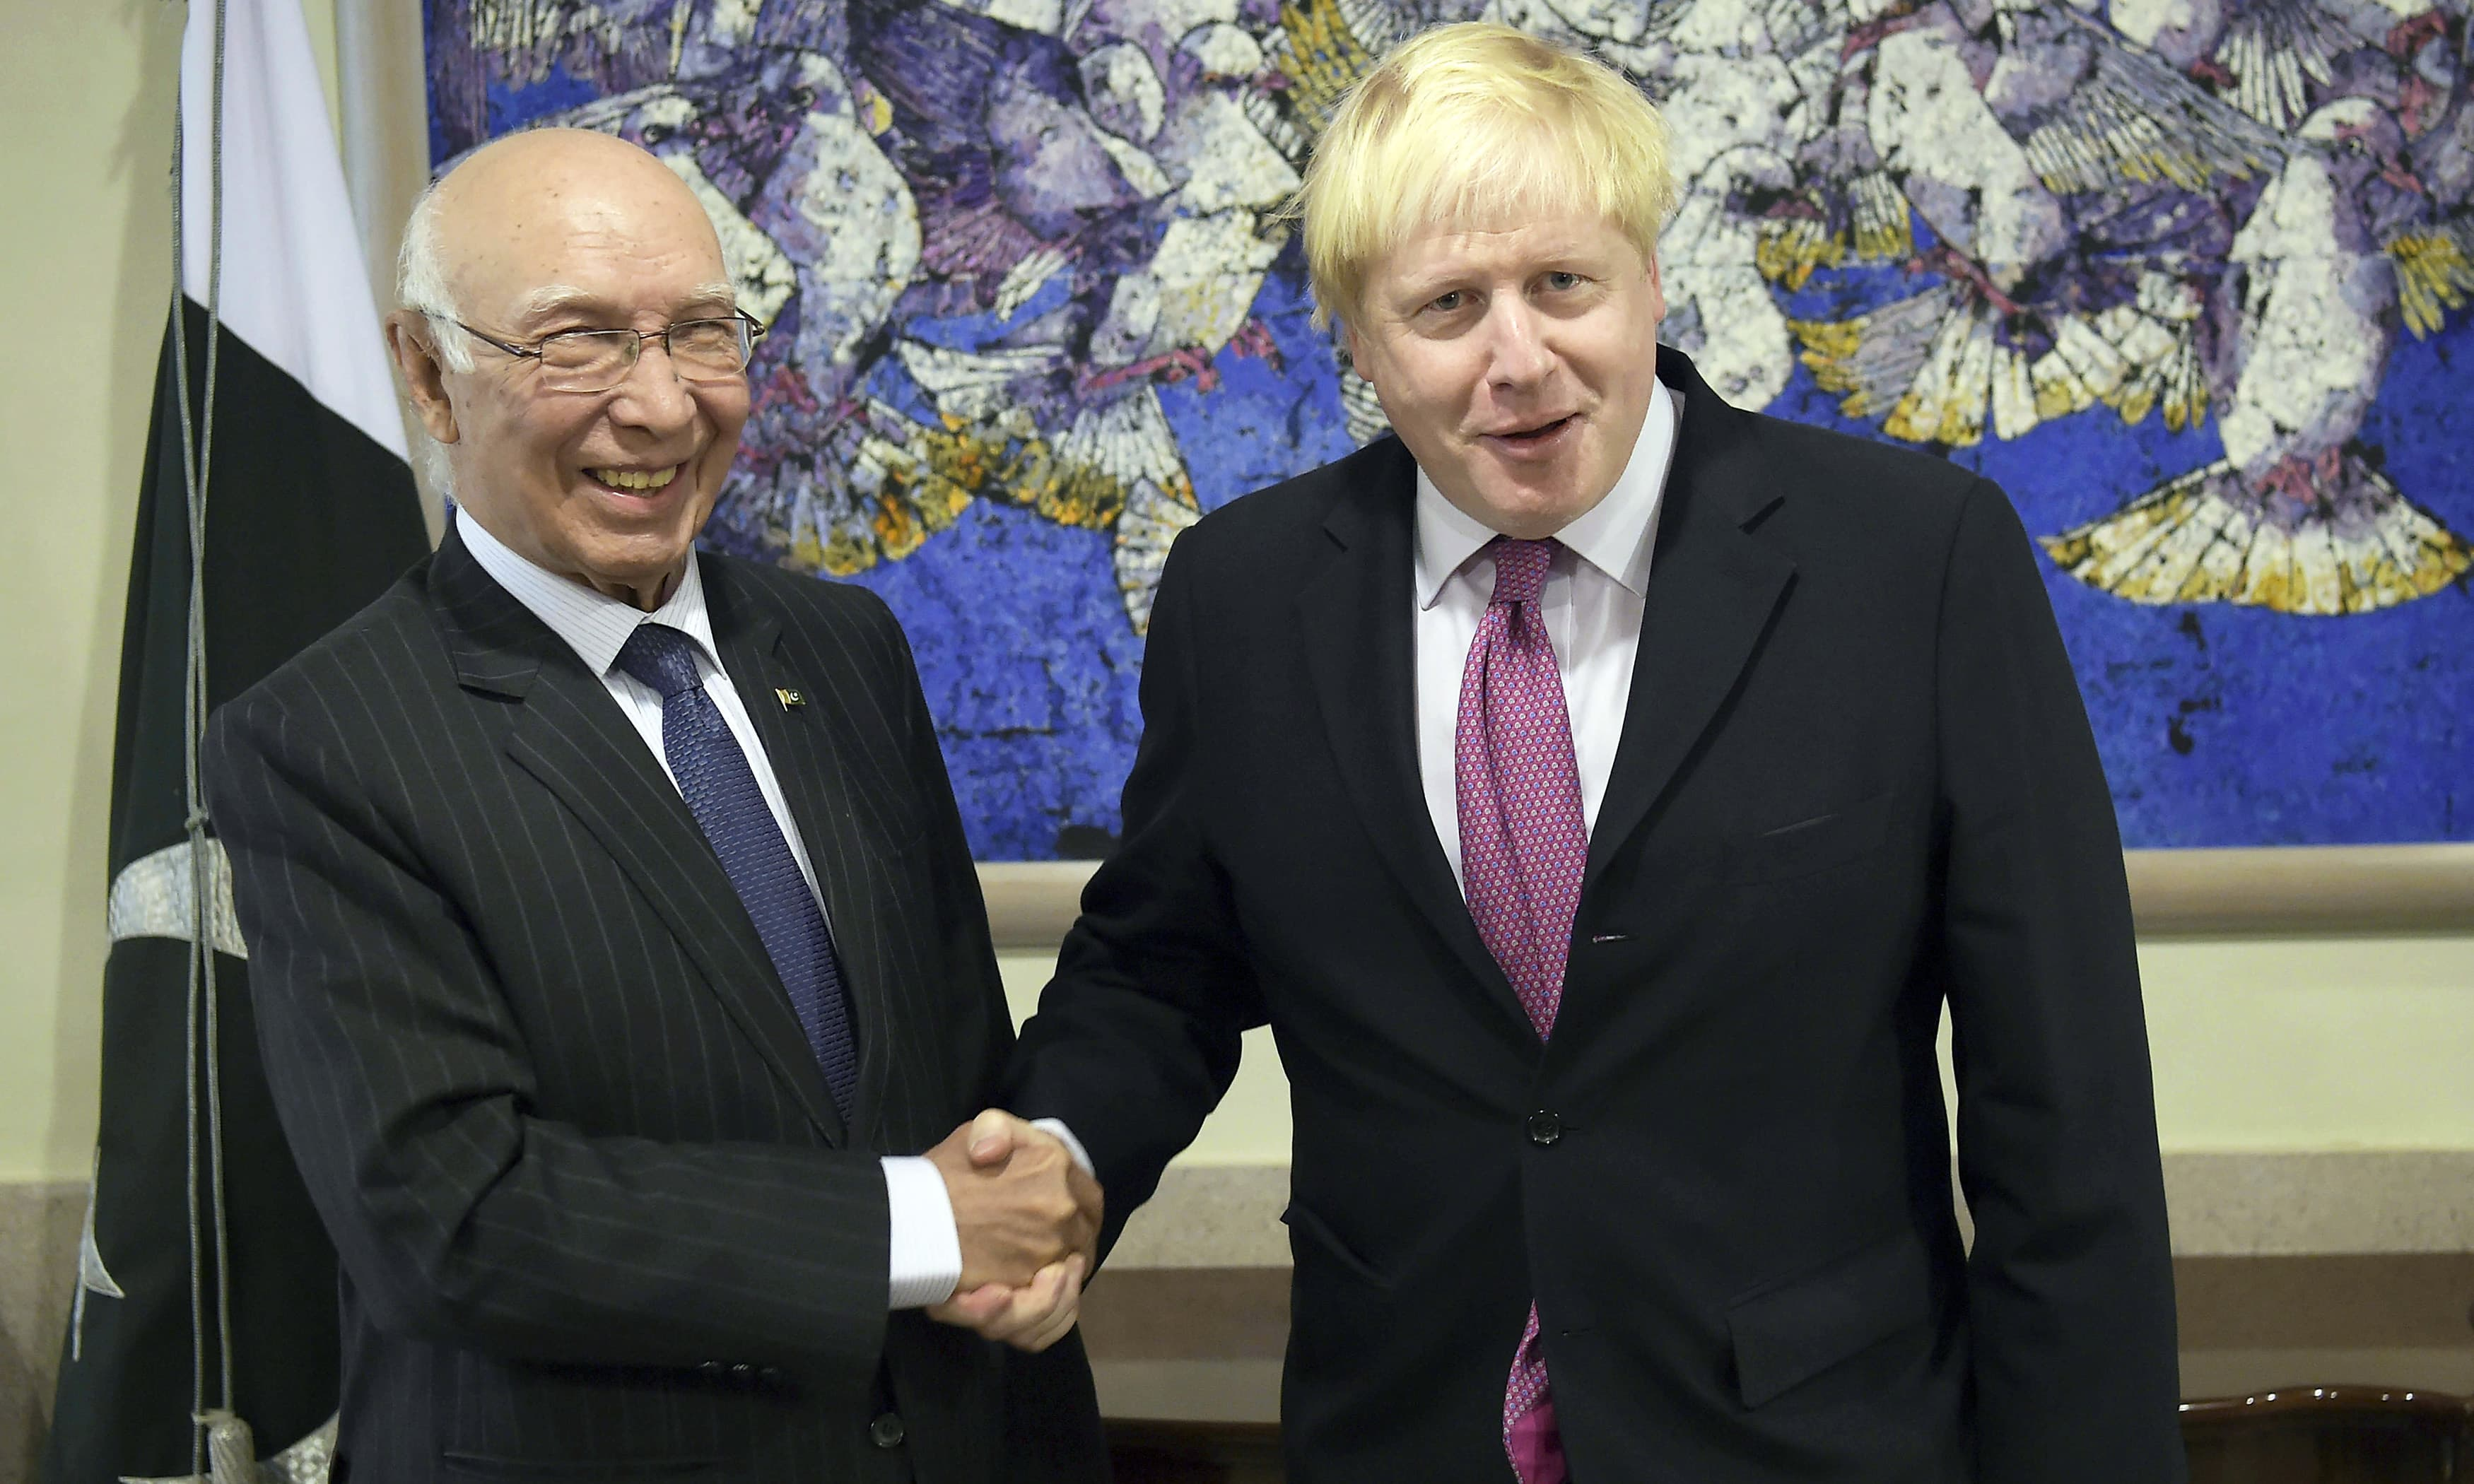 British Foreign Secy Boris Johnson arrives in capital: 'We call for an end to violence in Kashmir'